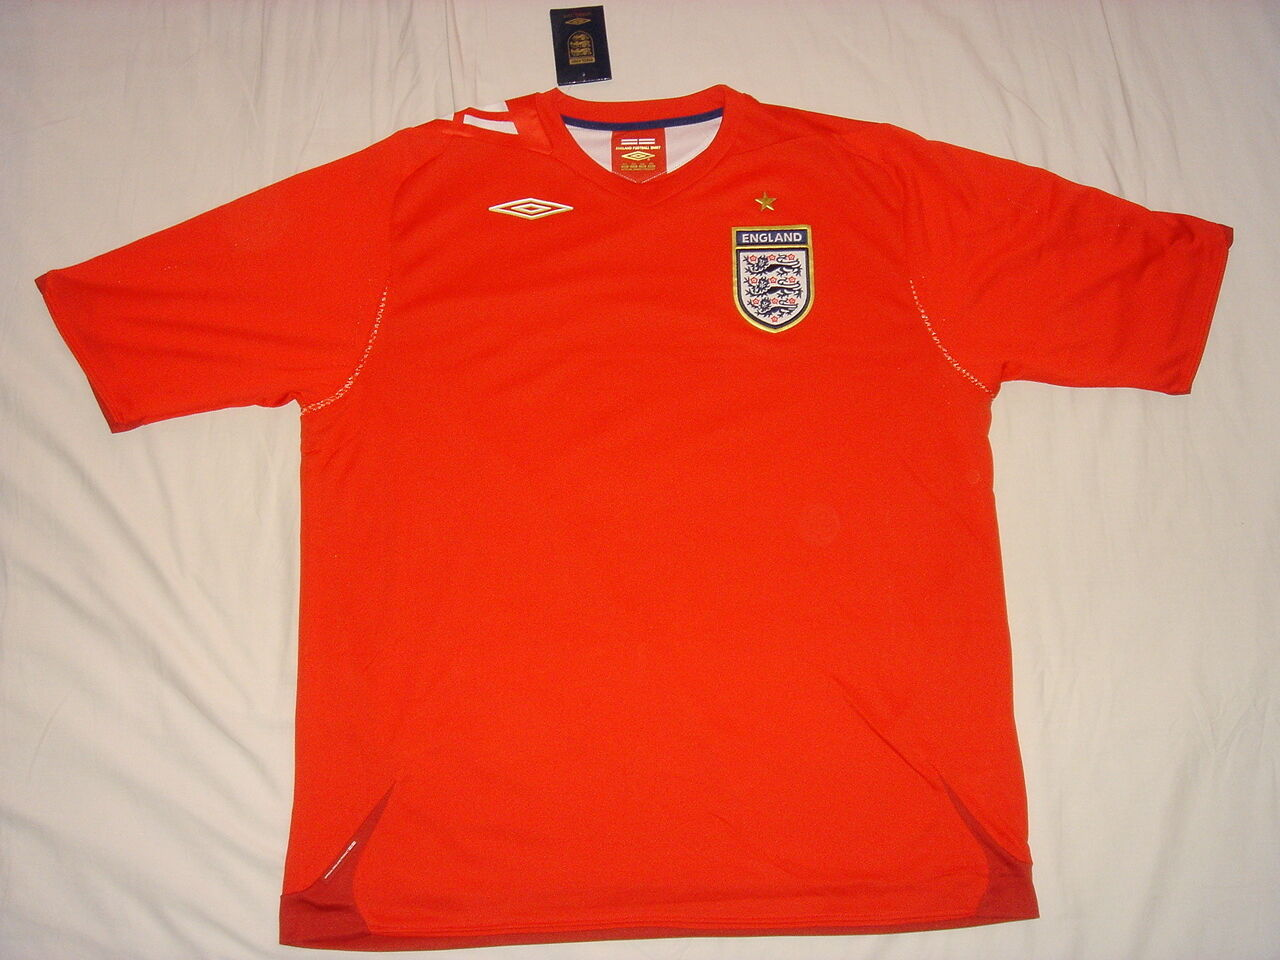 England National Team Soccer Jersey Umbro Top  Football Shirt  BNWT L